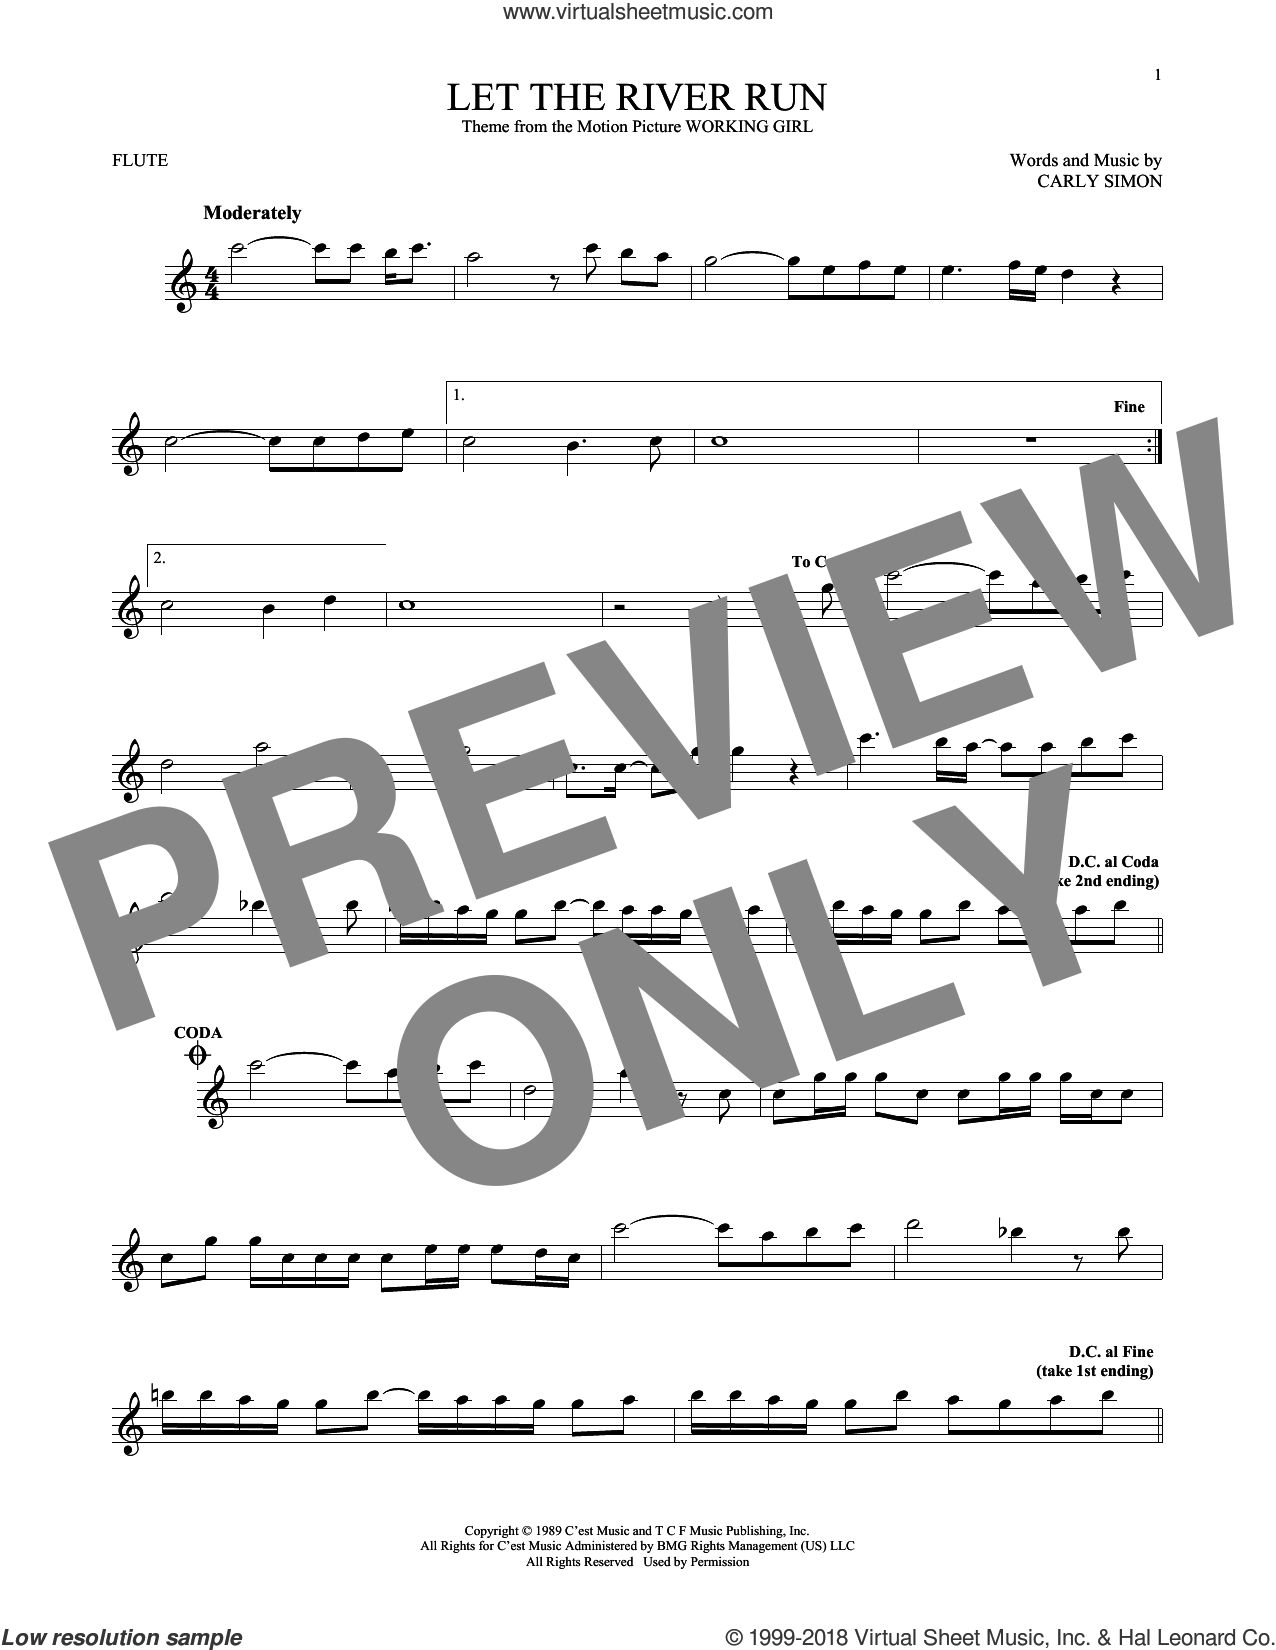 Let The River Run sheet music for flute solo by Carly Simon. Score Image Preview.